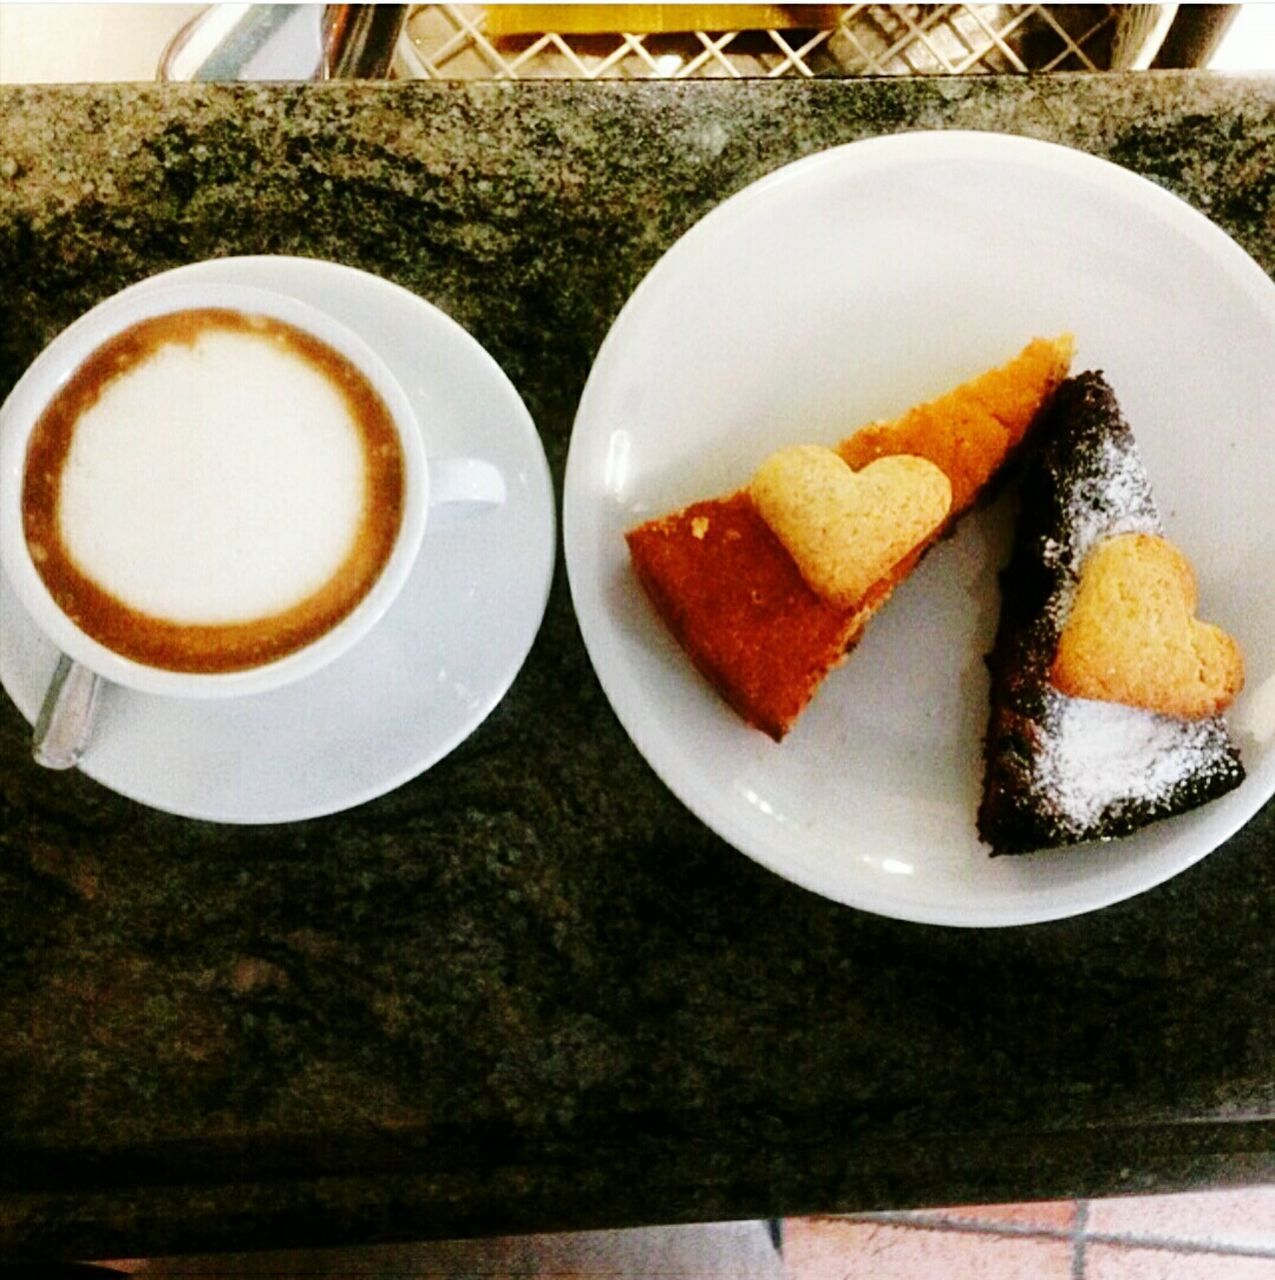 food and drink, table, food, freshness, plate, serving size, still life, refreshment, sweet food, indulgence, ready-to-eat, dessert, coffee cup, temptation, drink, no people, indoors, coffee - drink, close-up, slice, cake, unhealthy eating, frothy drink, pastry, day